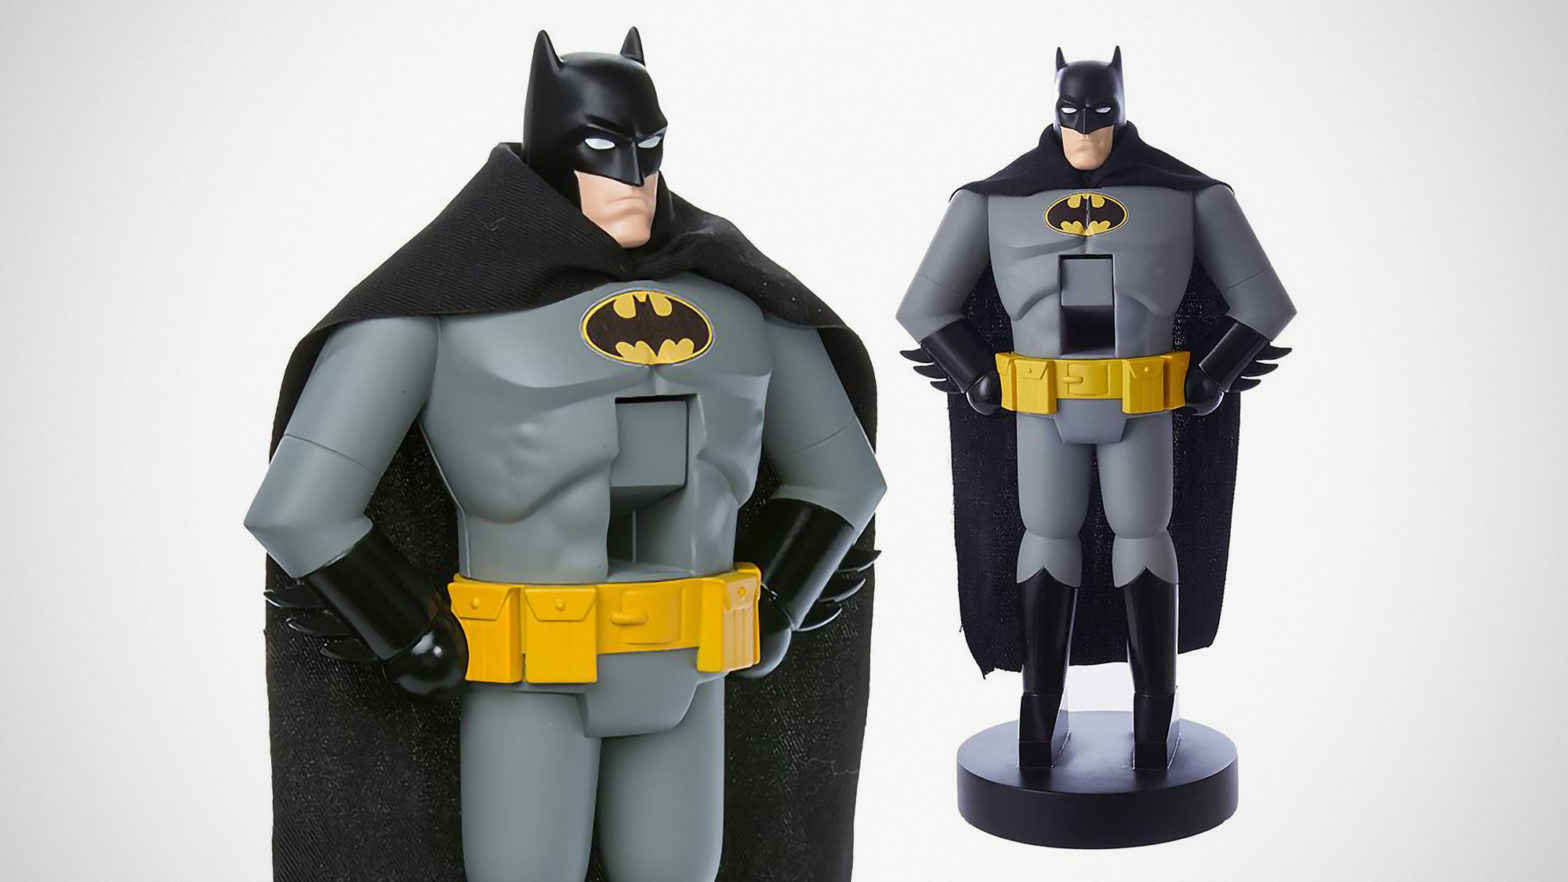 Kurt S. Adler 10-inch Batman Nutcracker